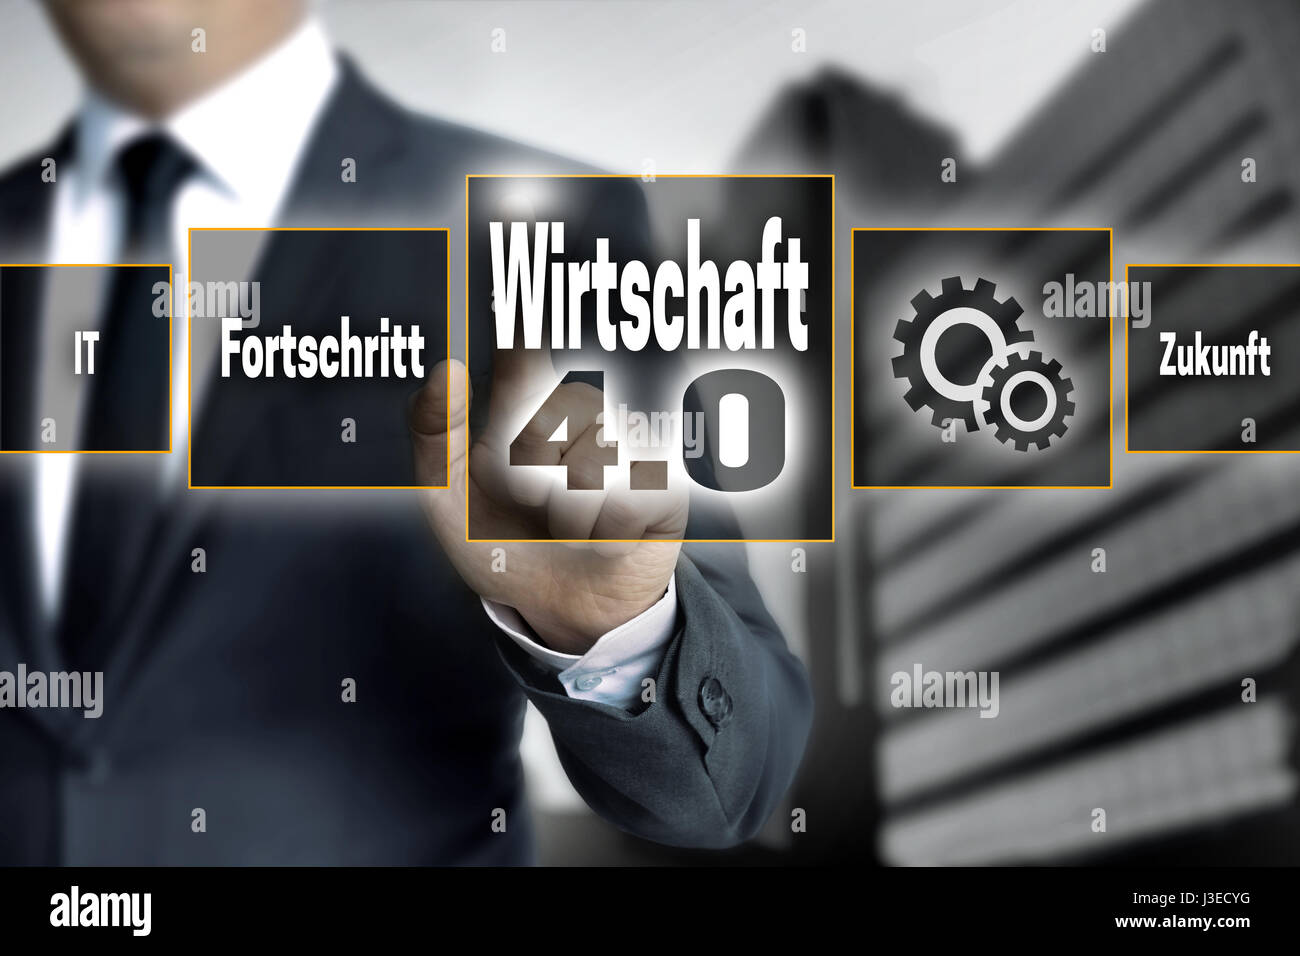 Wirtschaft 4.0 (in german economy) touchscreen is operated by a businessman. - Stock Image